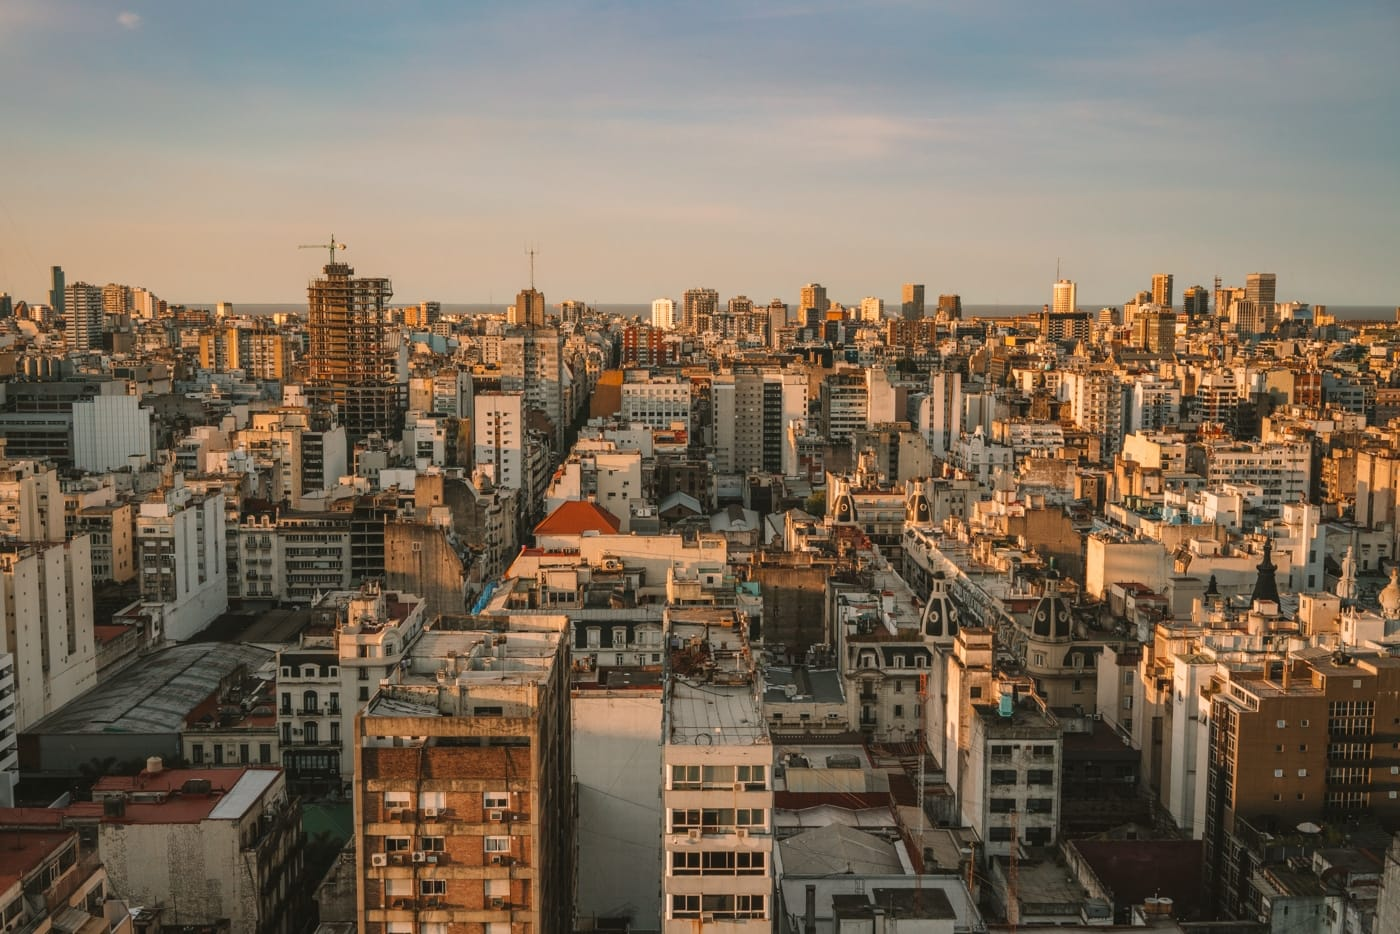 City skyline of Buenos Aires with urban buildings